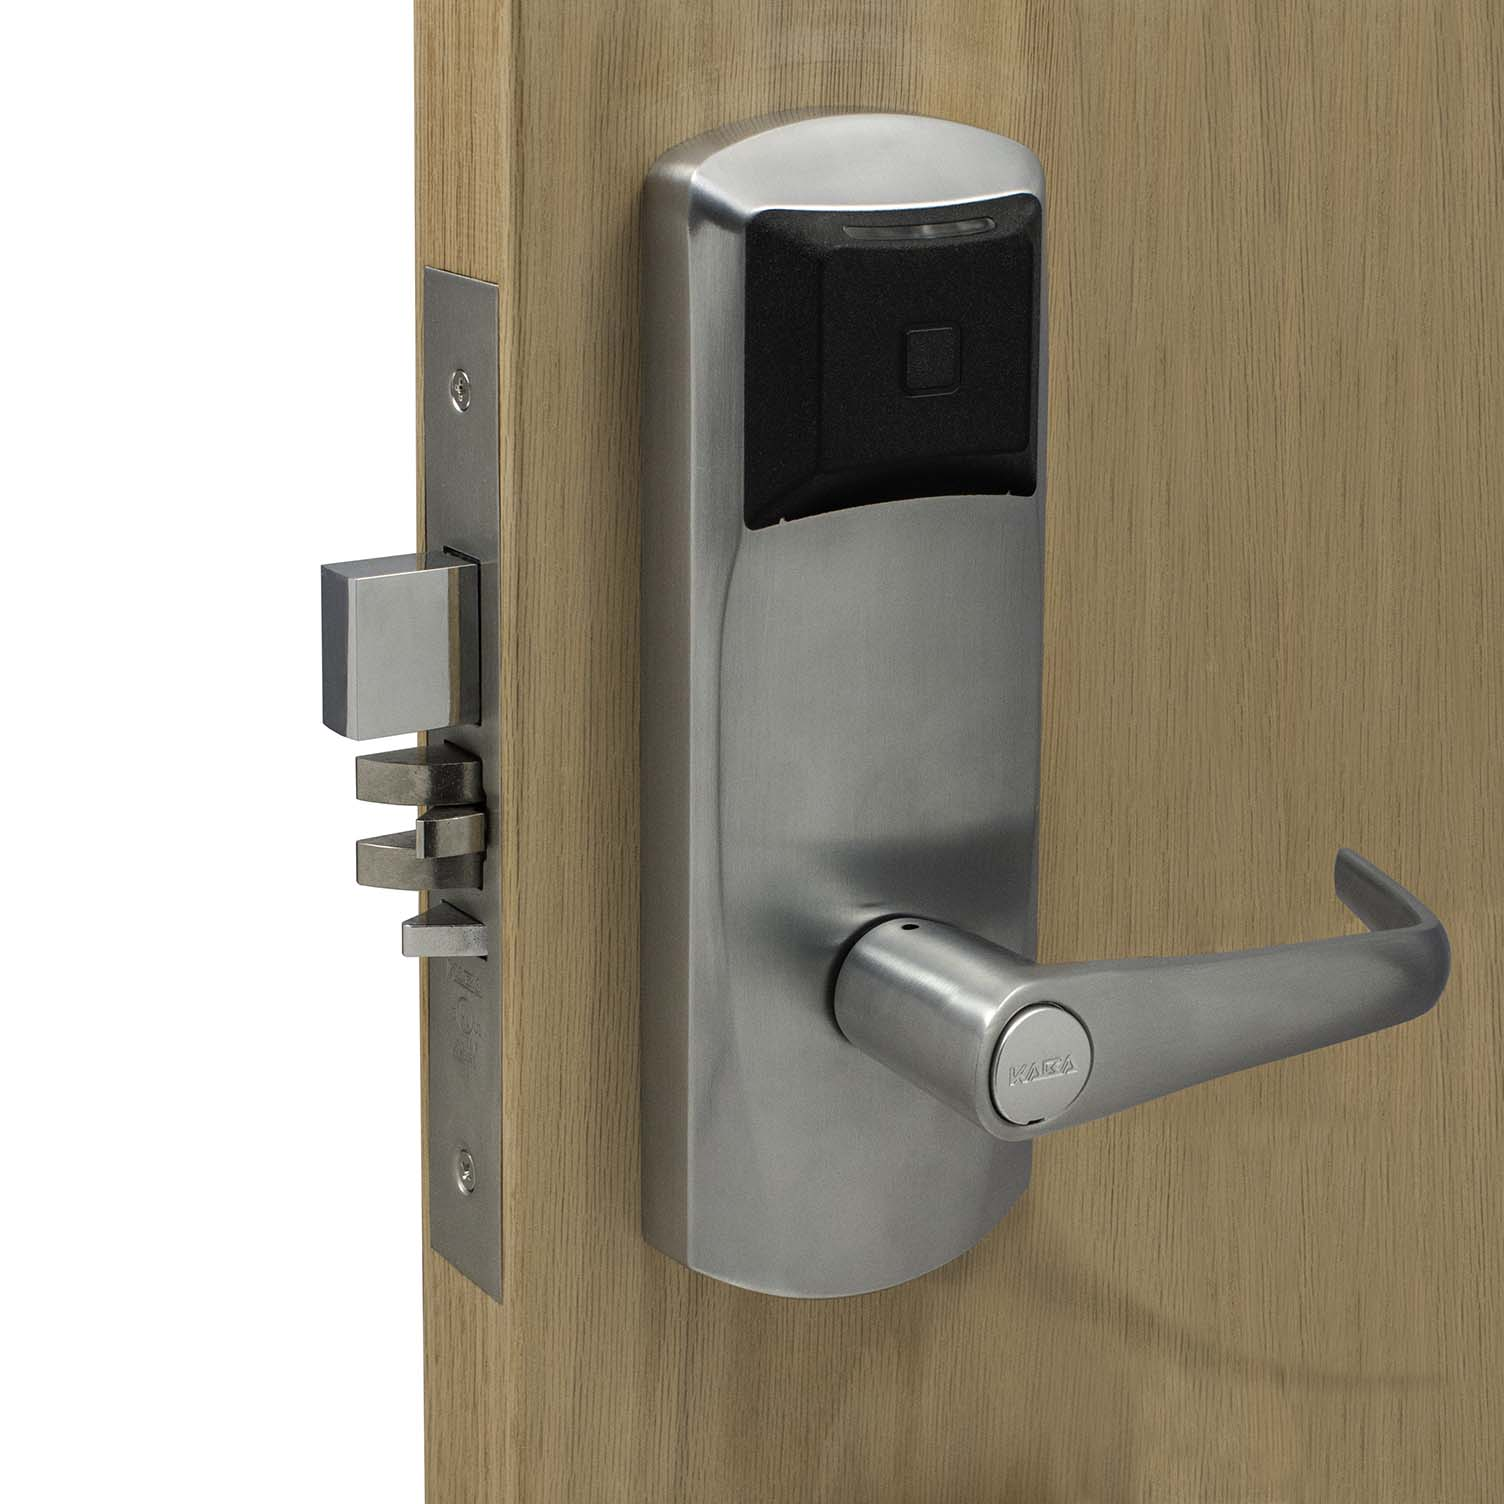 Dormakaba Lodging Systems Saflok Electronic Hotel Lock Rt